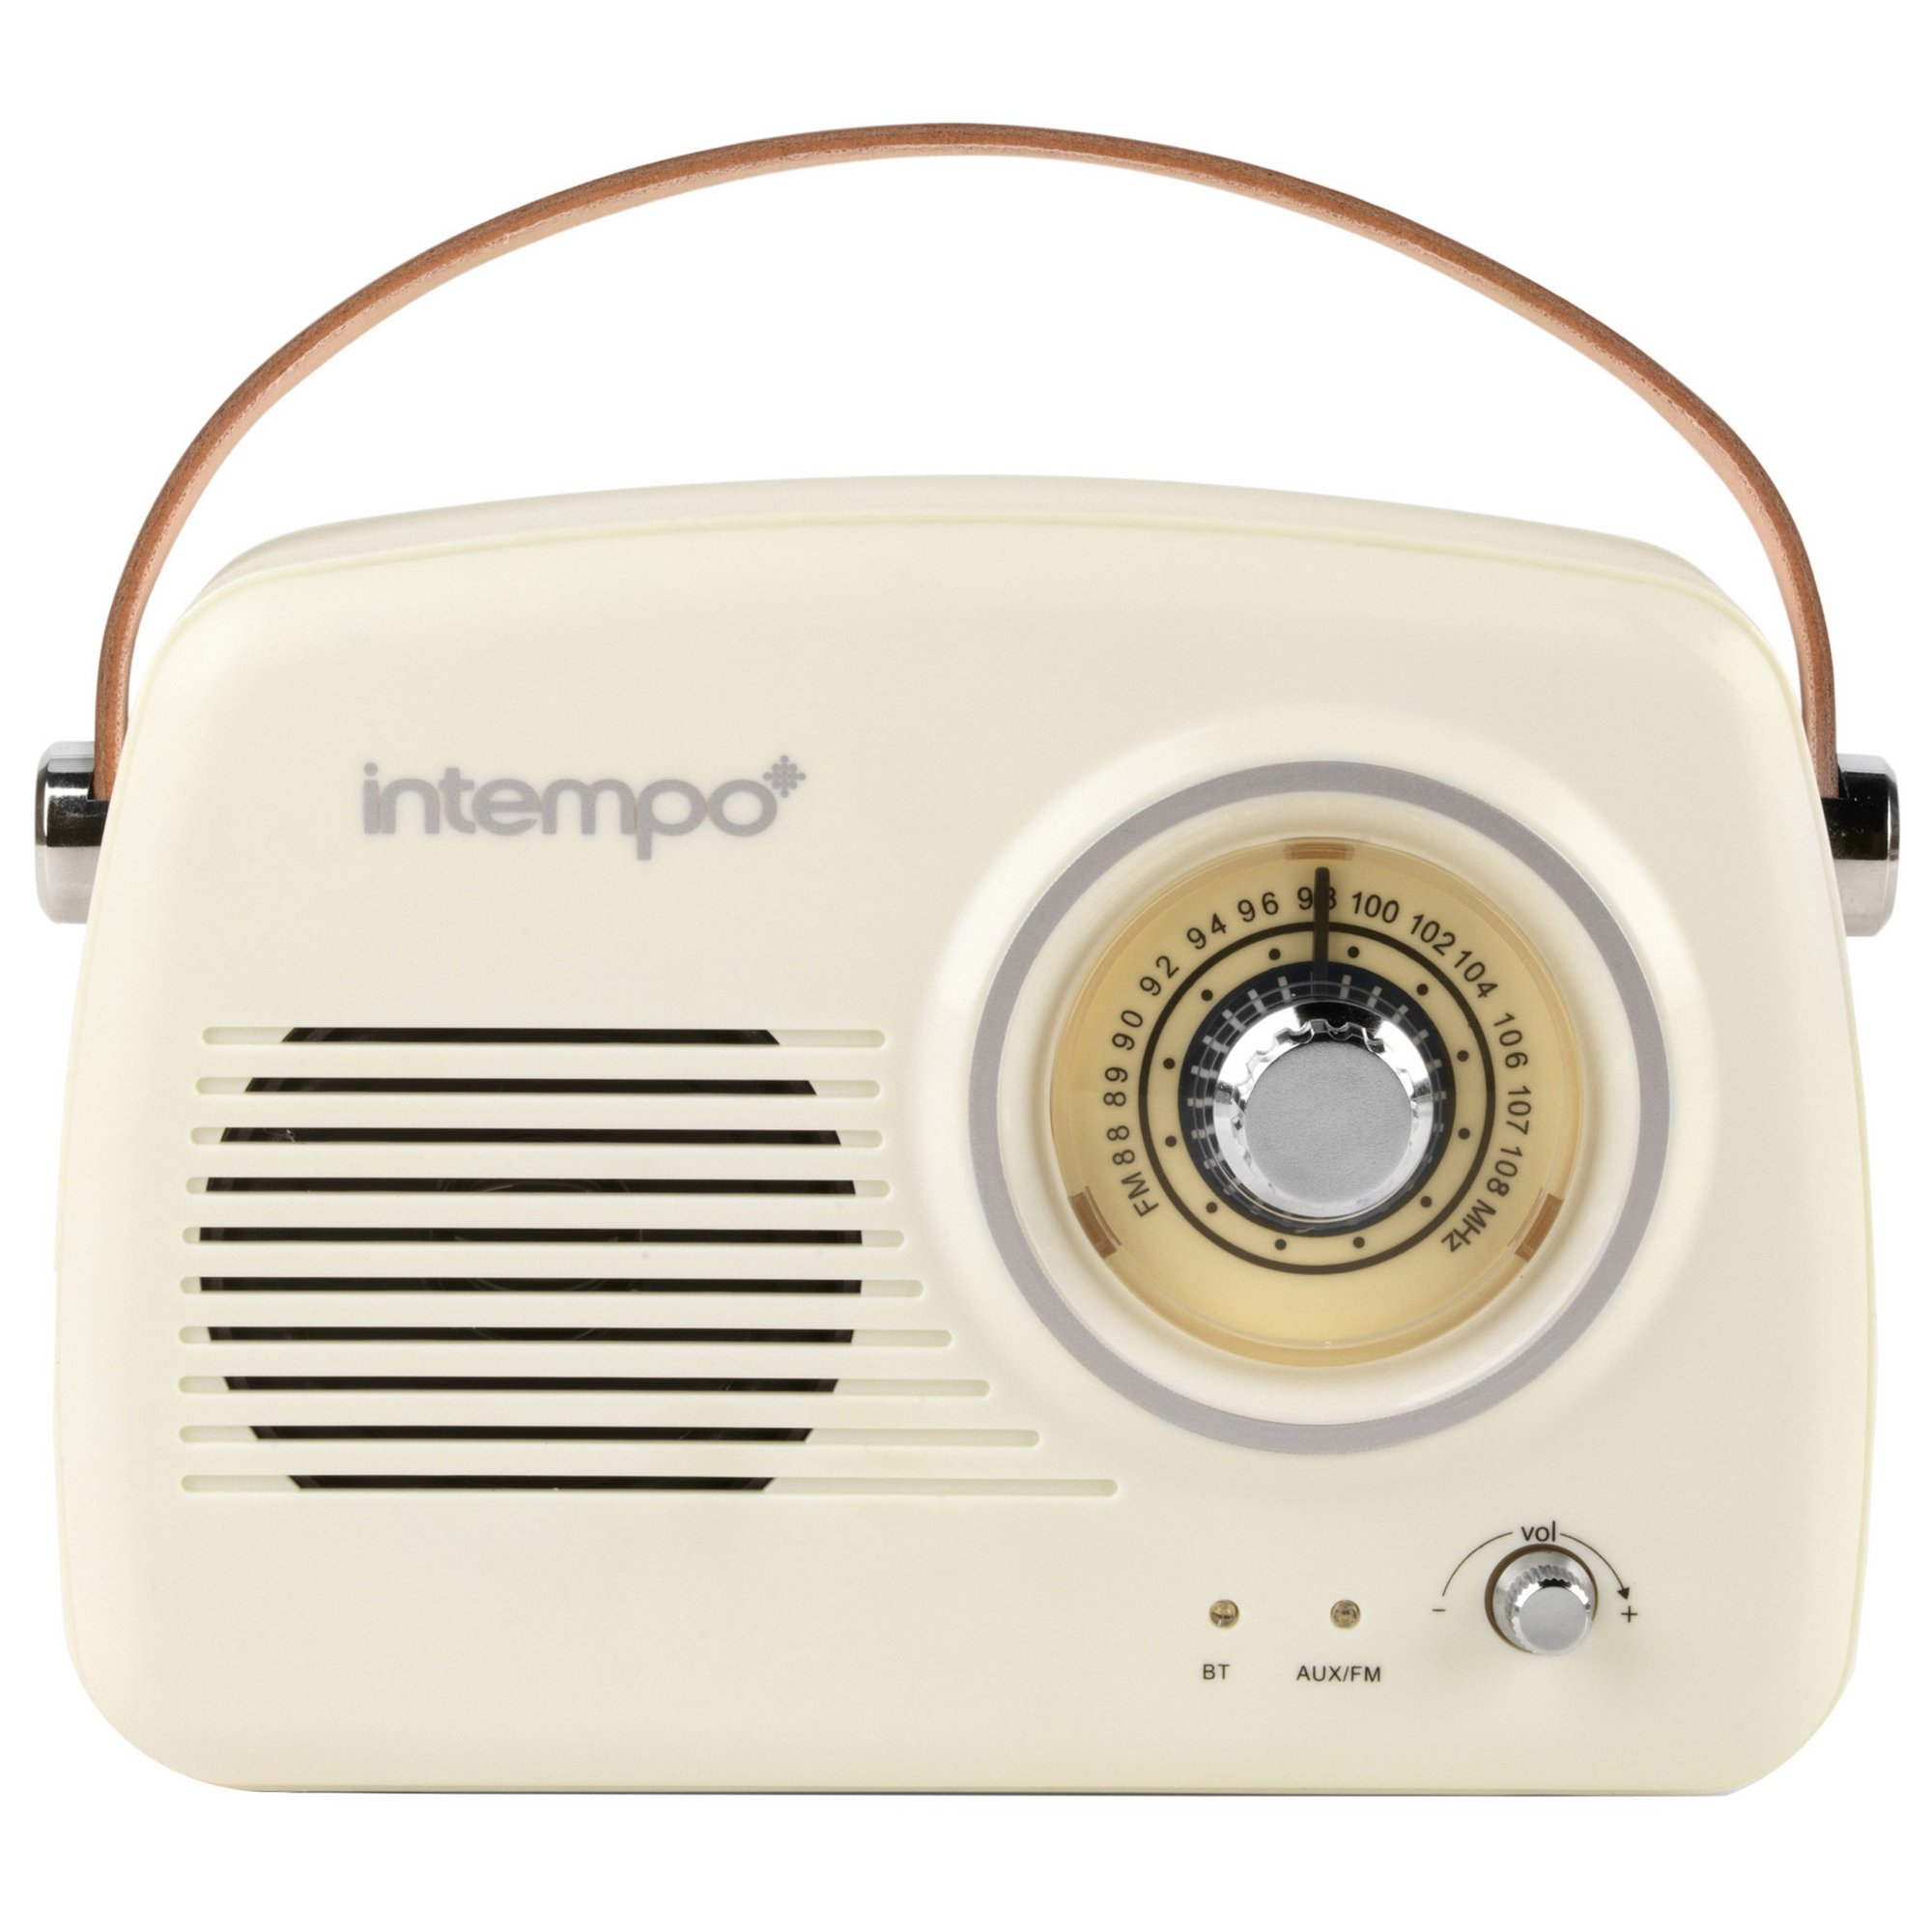 Image of Intempo Bluetooth Speaker with FM Radio and Leather Strap